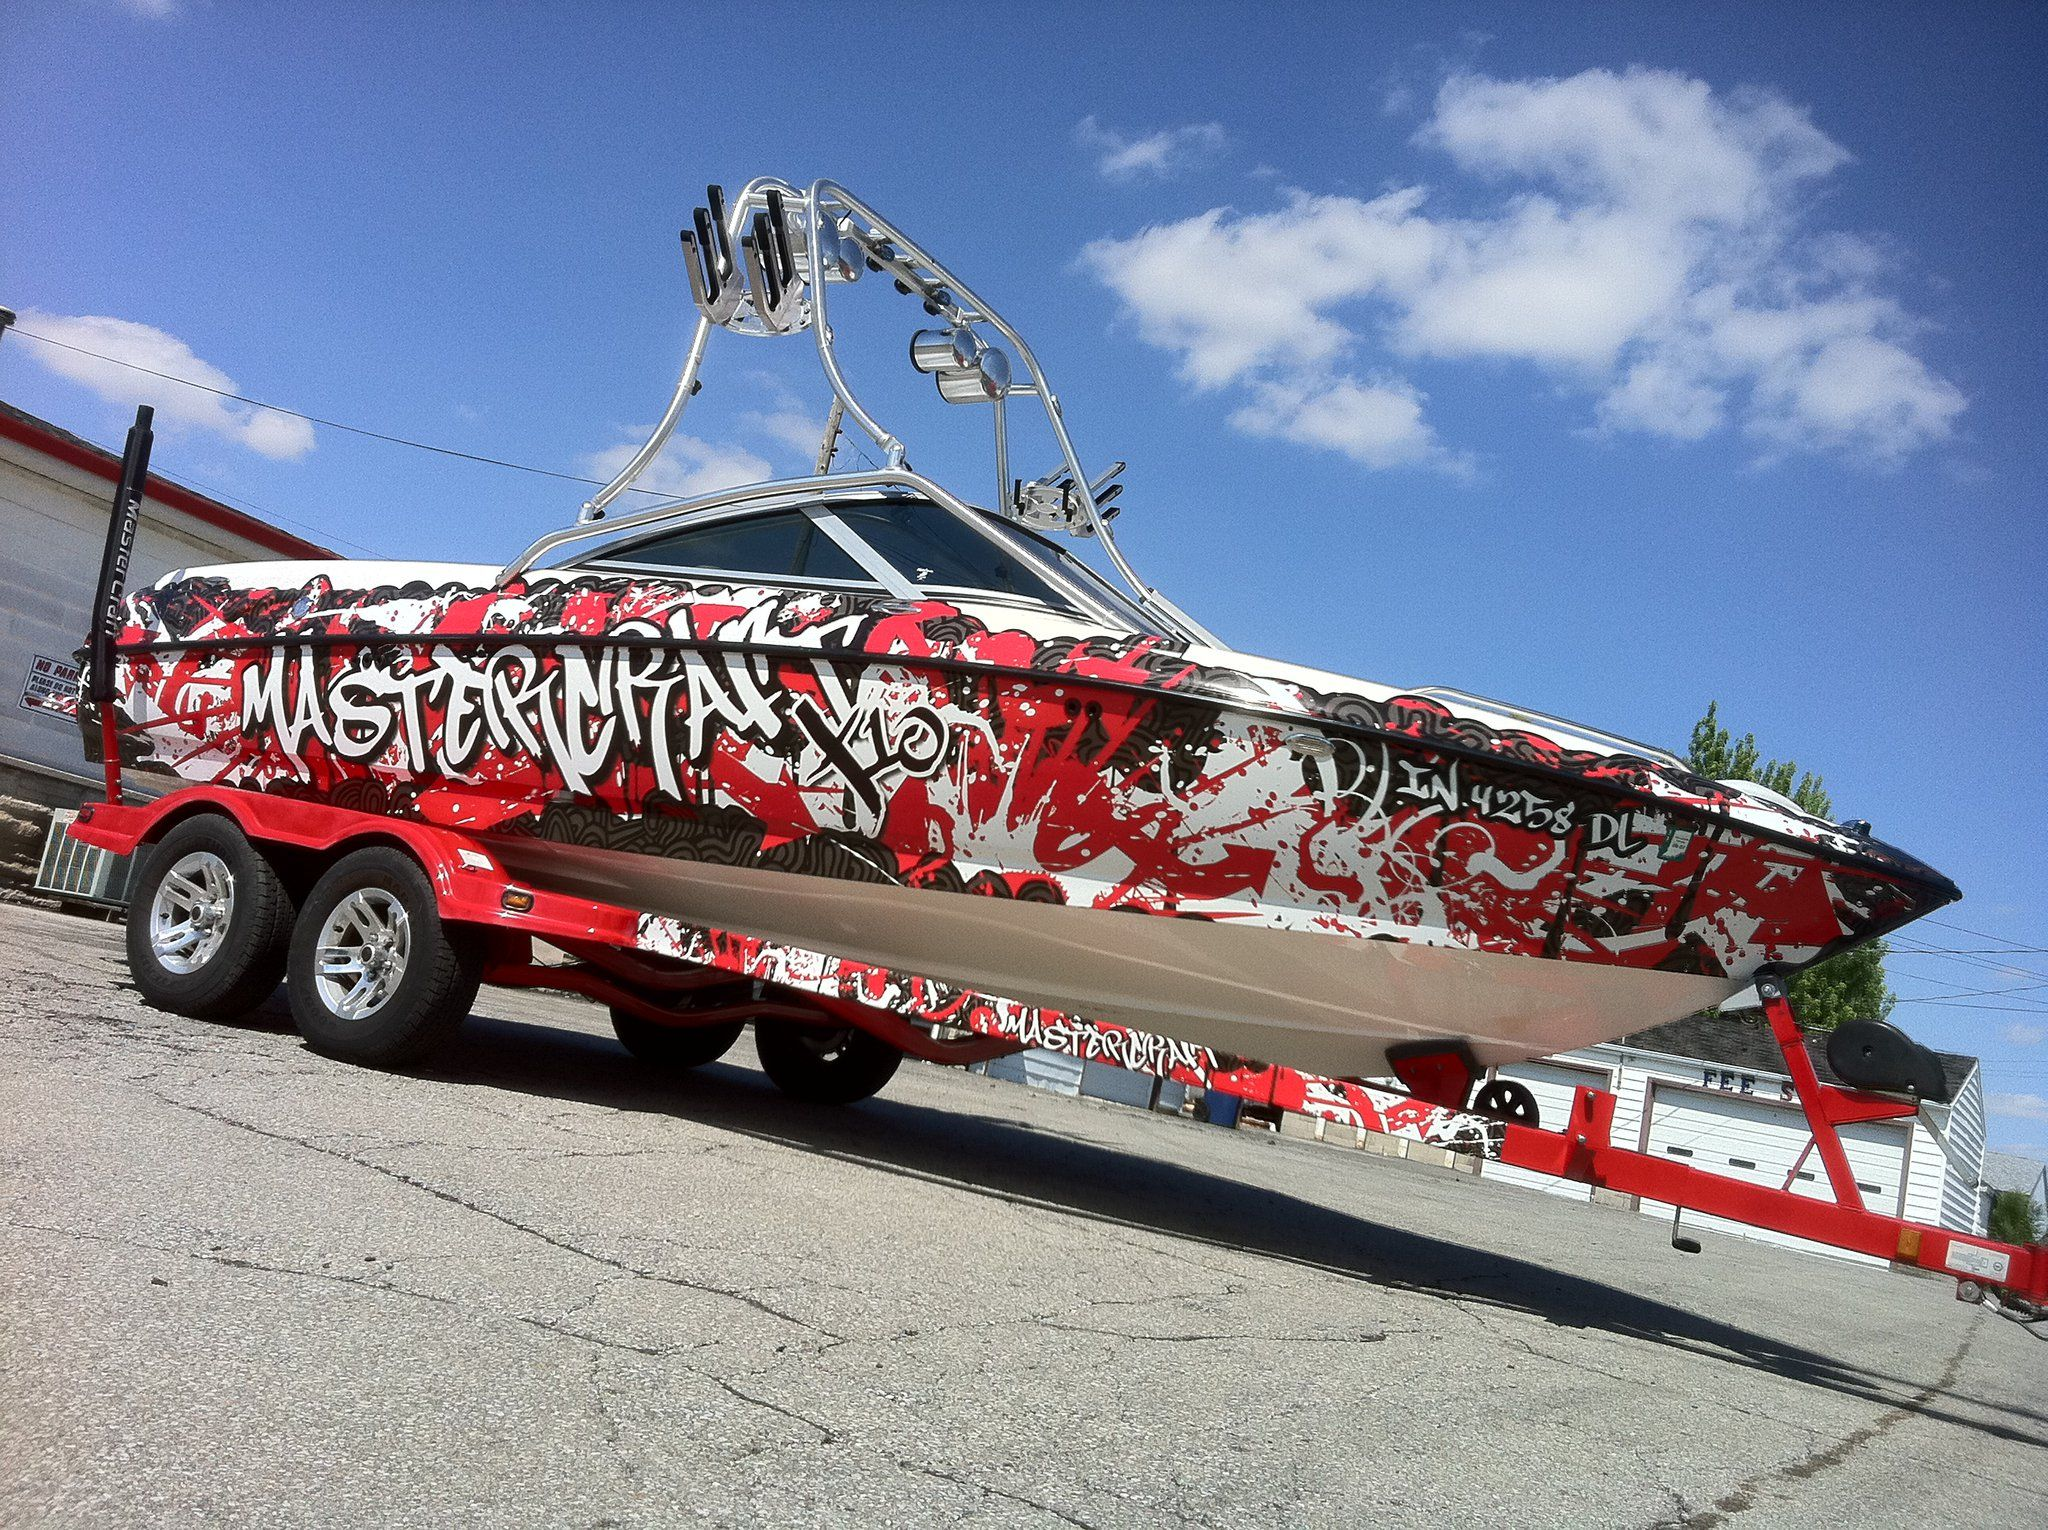 Boat Wrap Graphics I Want Pinterest Boat Wraps Boating And - Sporting boat decalsbest boat wraps custom vinyl images on pinterest boat wraps